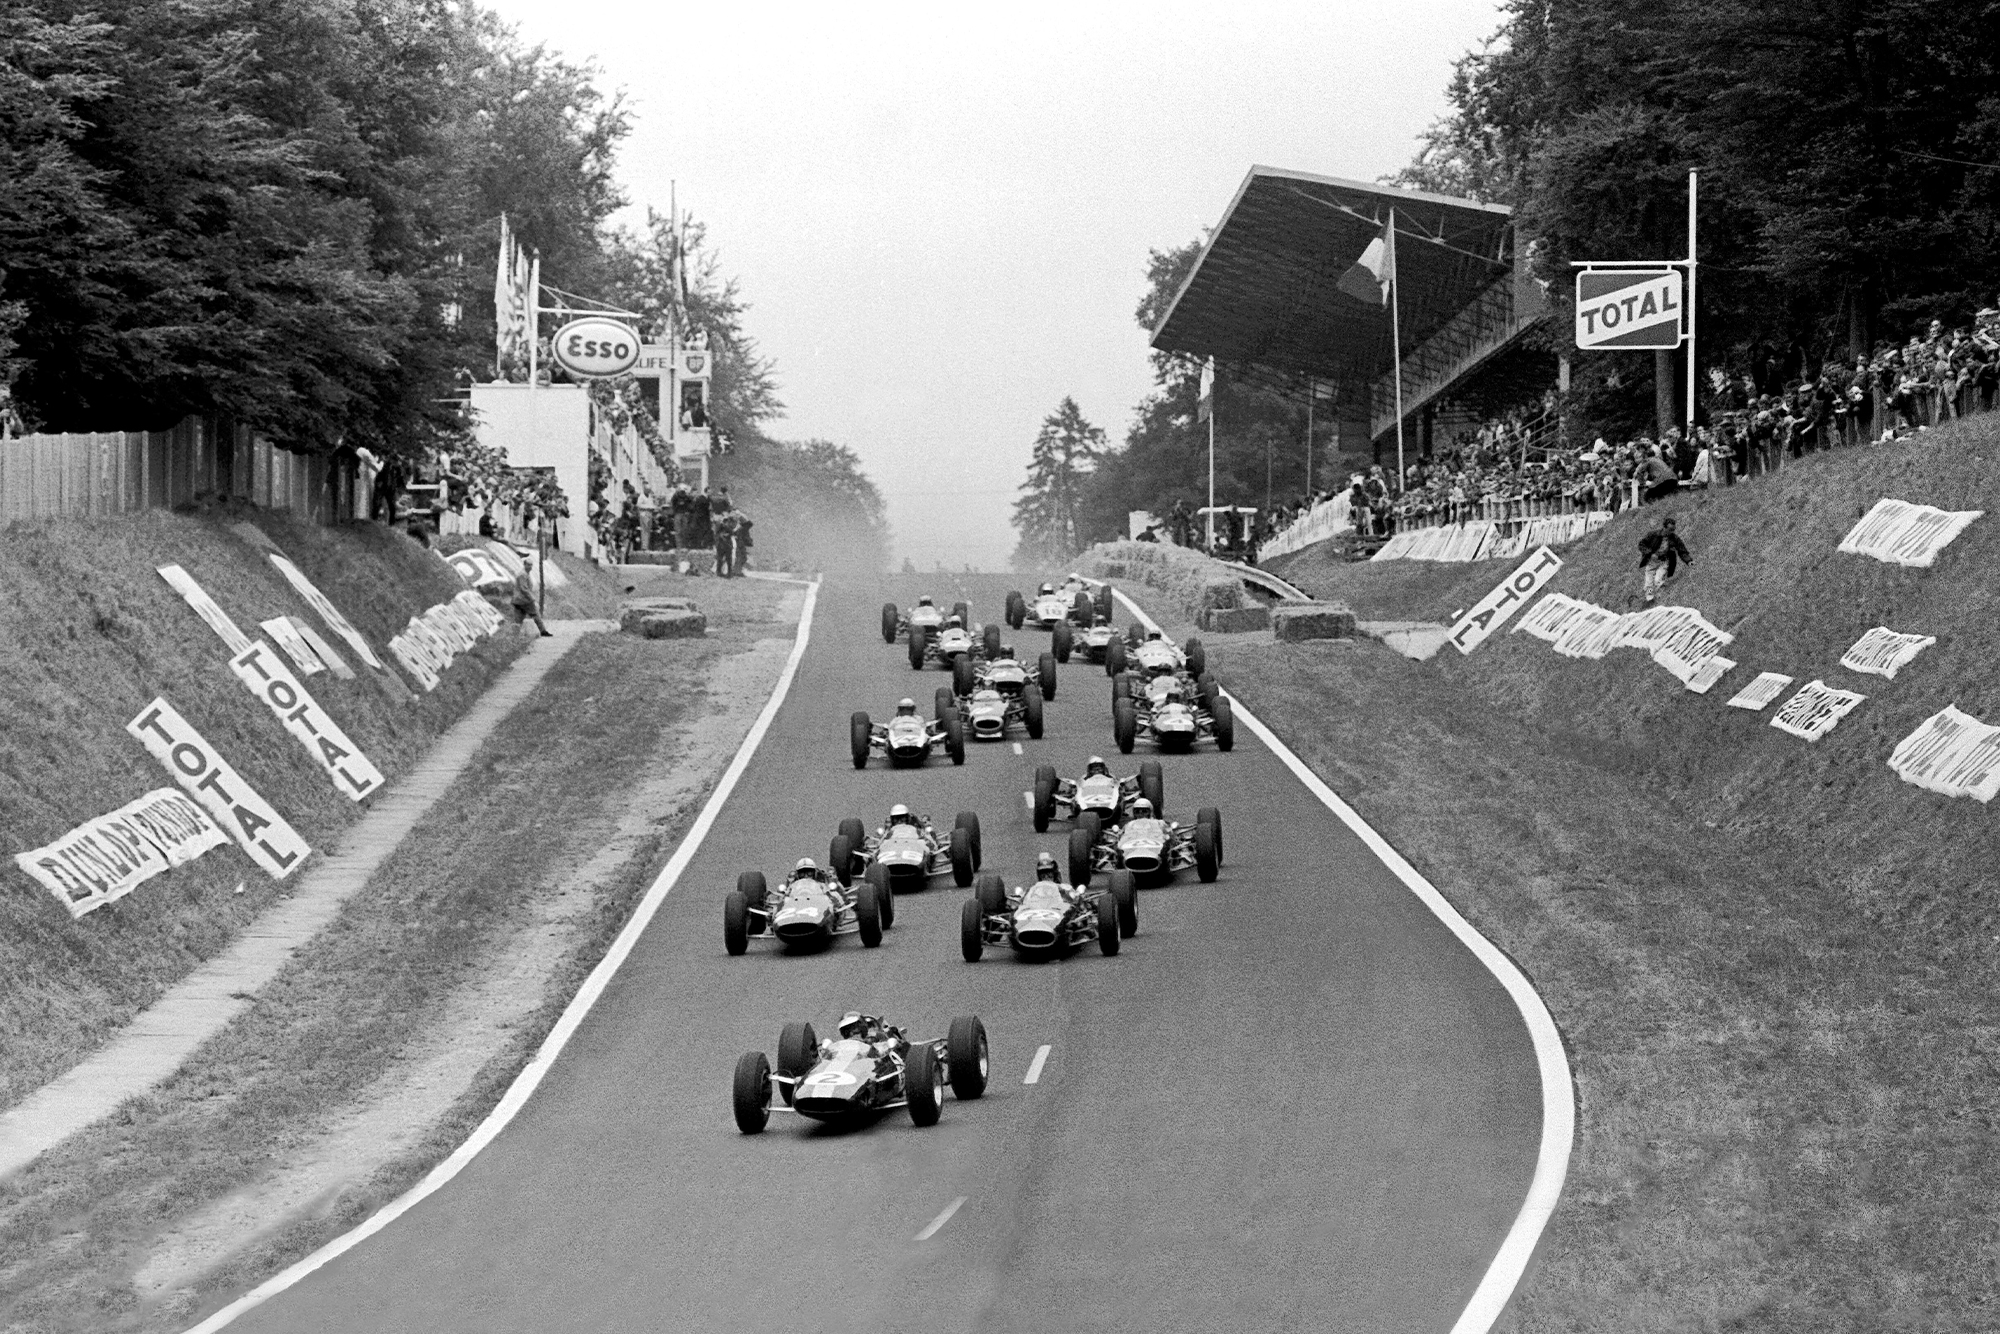 Jim Clark, Lotus 25 Climax, leads Dan Gurney, Brabham BT7 Climax, and John Surtees, Ferrari 158, as the field follow behind.